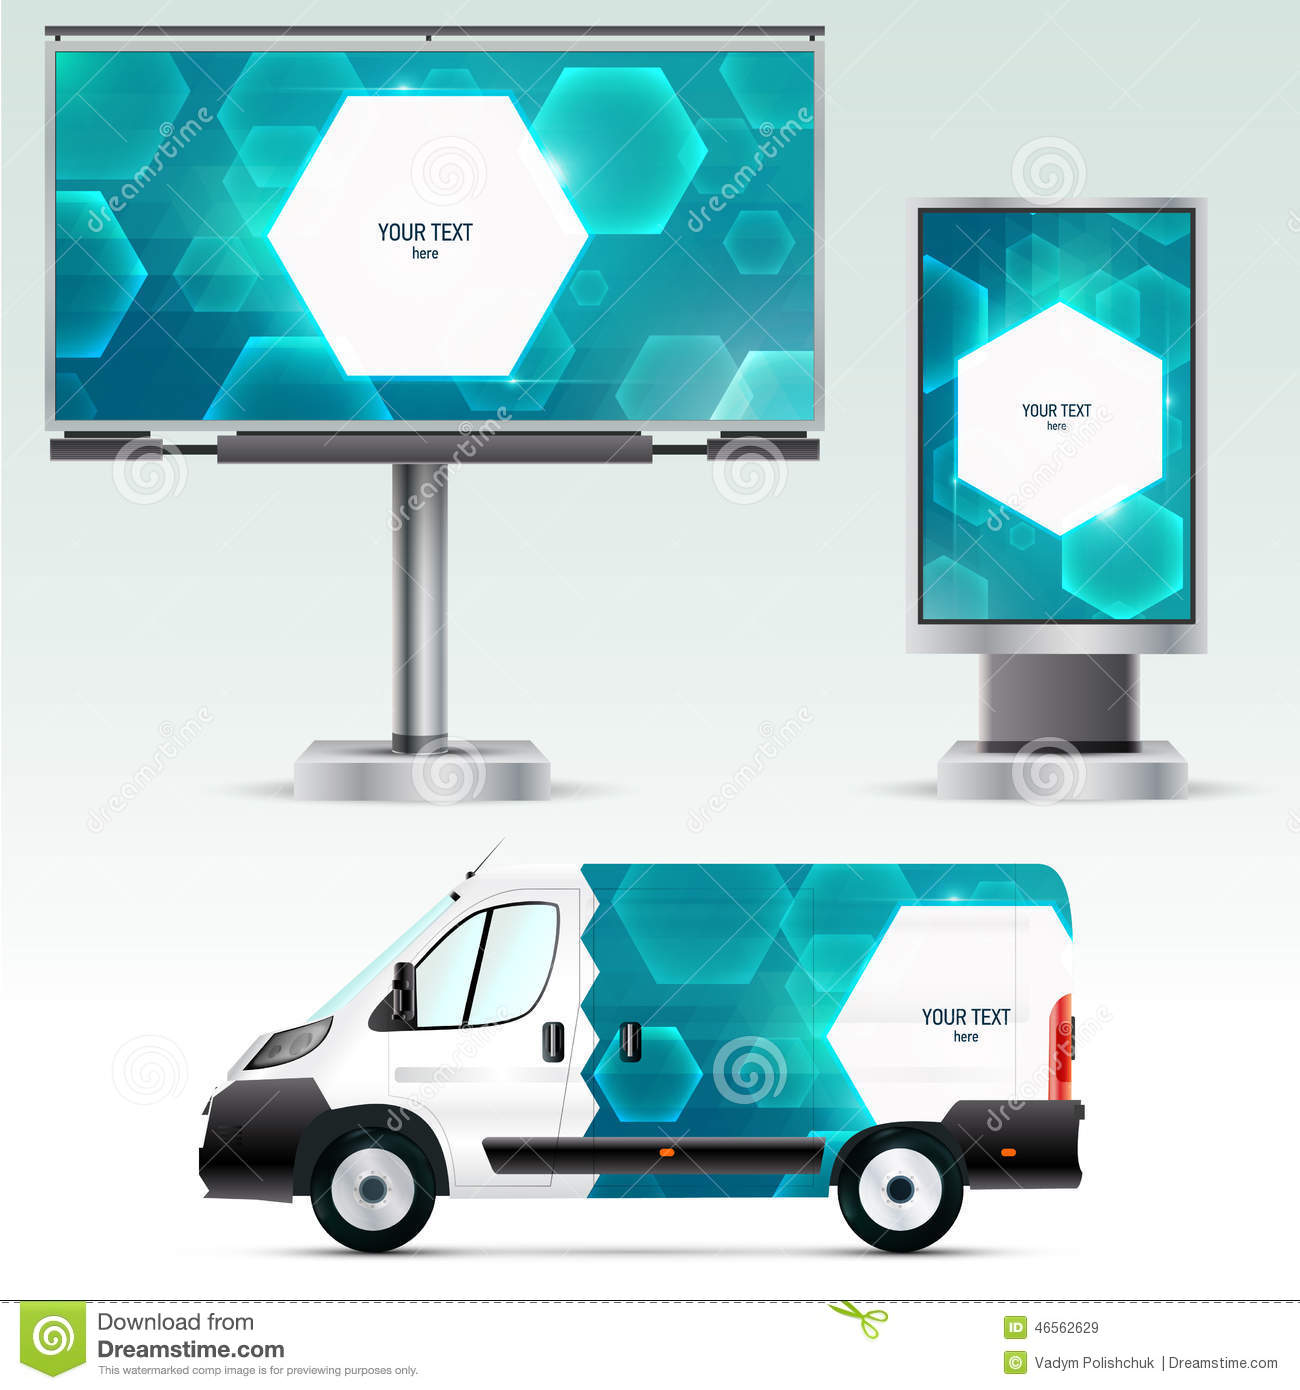 template outdoor advertising or corporate identity on the car billboard and citylight stock. Black Bedroom Furniture Sets. Home Design Ideas